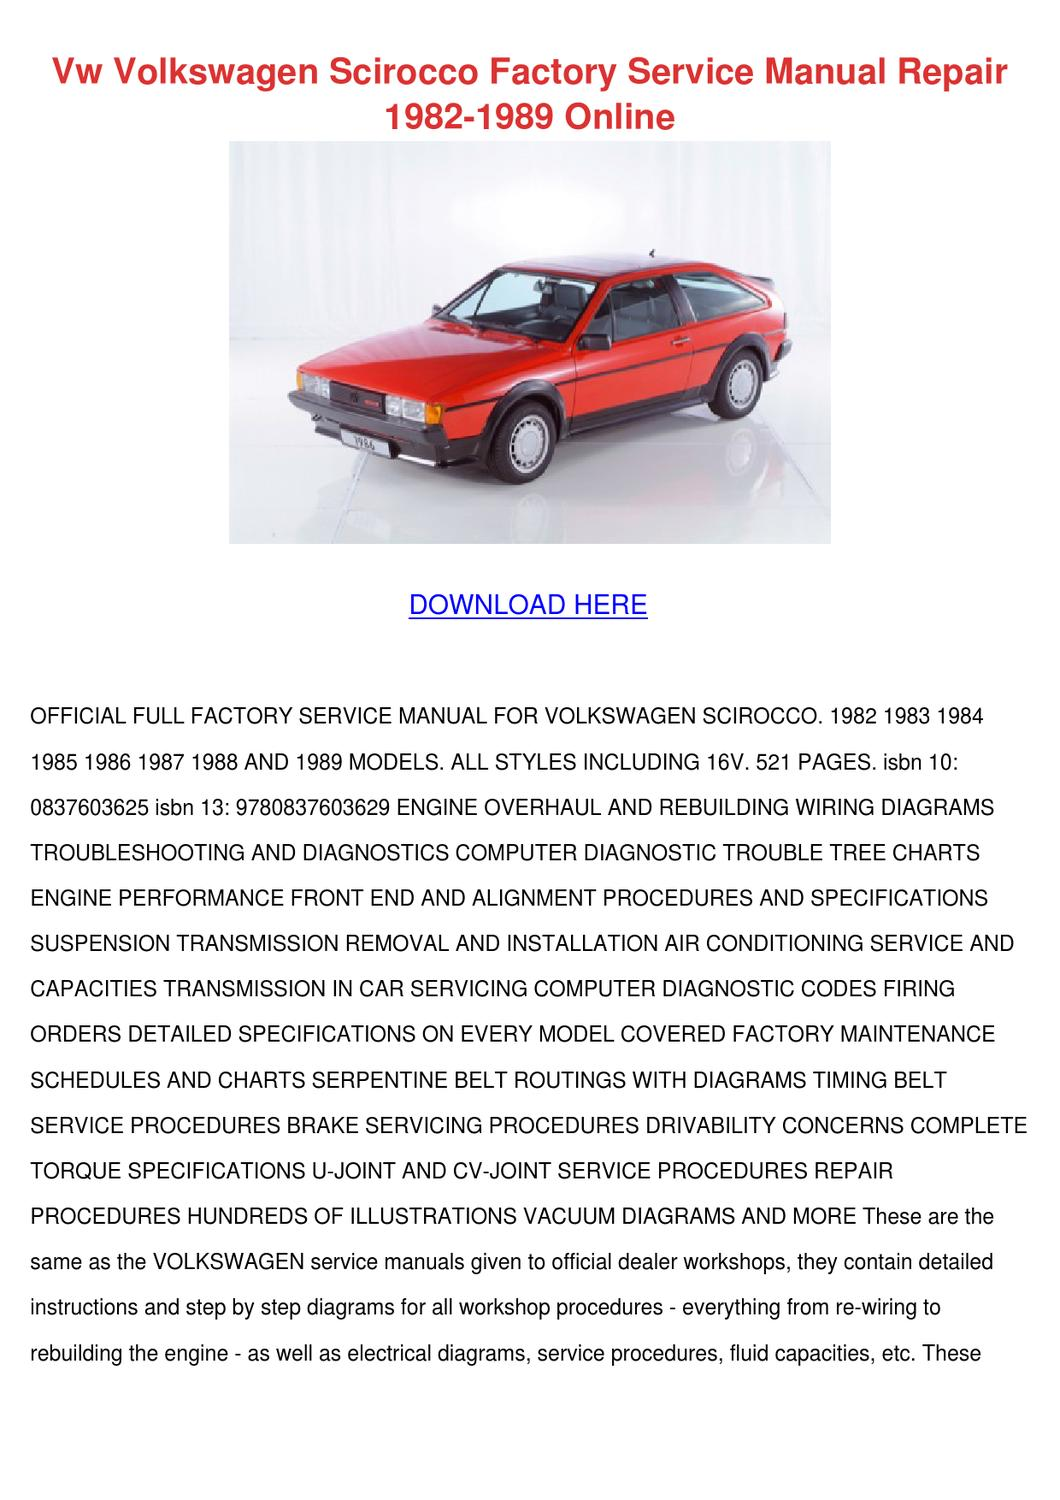 Groovy Vw Volkswagen Scirocco Factory Service Manual By Sharee Timoteo Issuu Wiring Database Ilarigelartorg